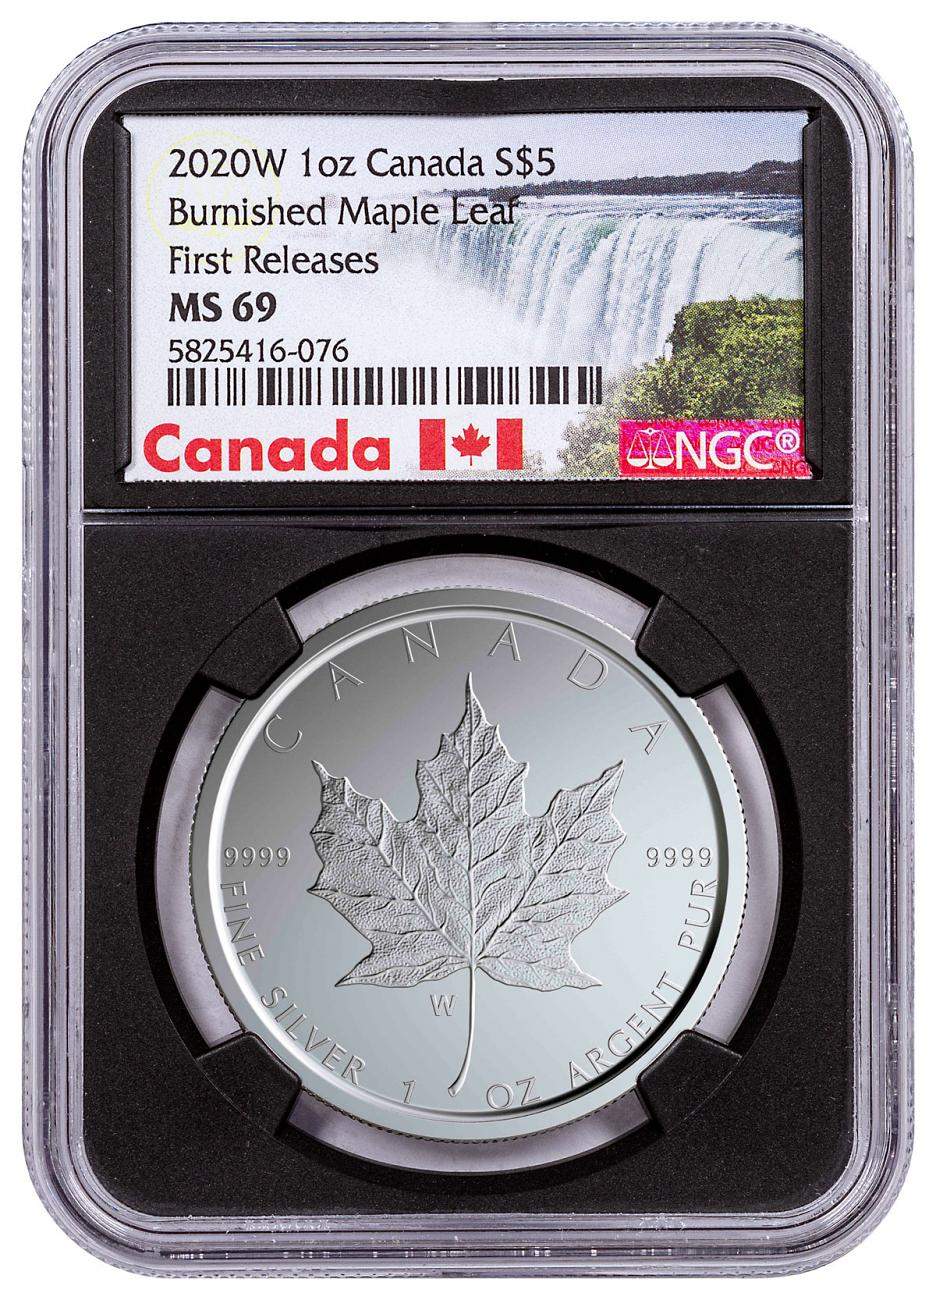 2020-W Canada 1 oz Silver Maple Leaf Burnished $5 Coin NGC MS69 FR With Mint COA Black Core Holder Exclusive Canada Label